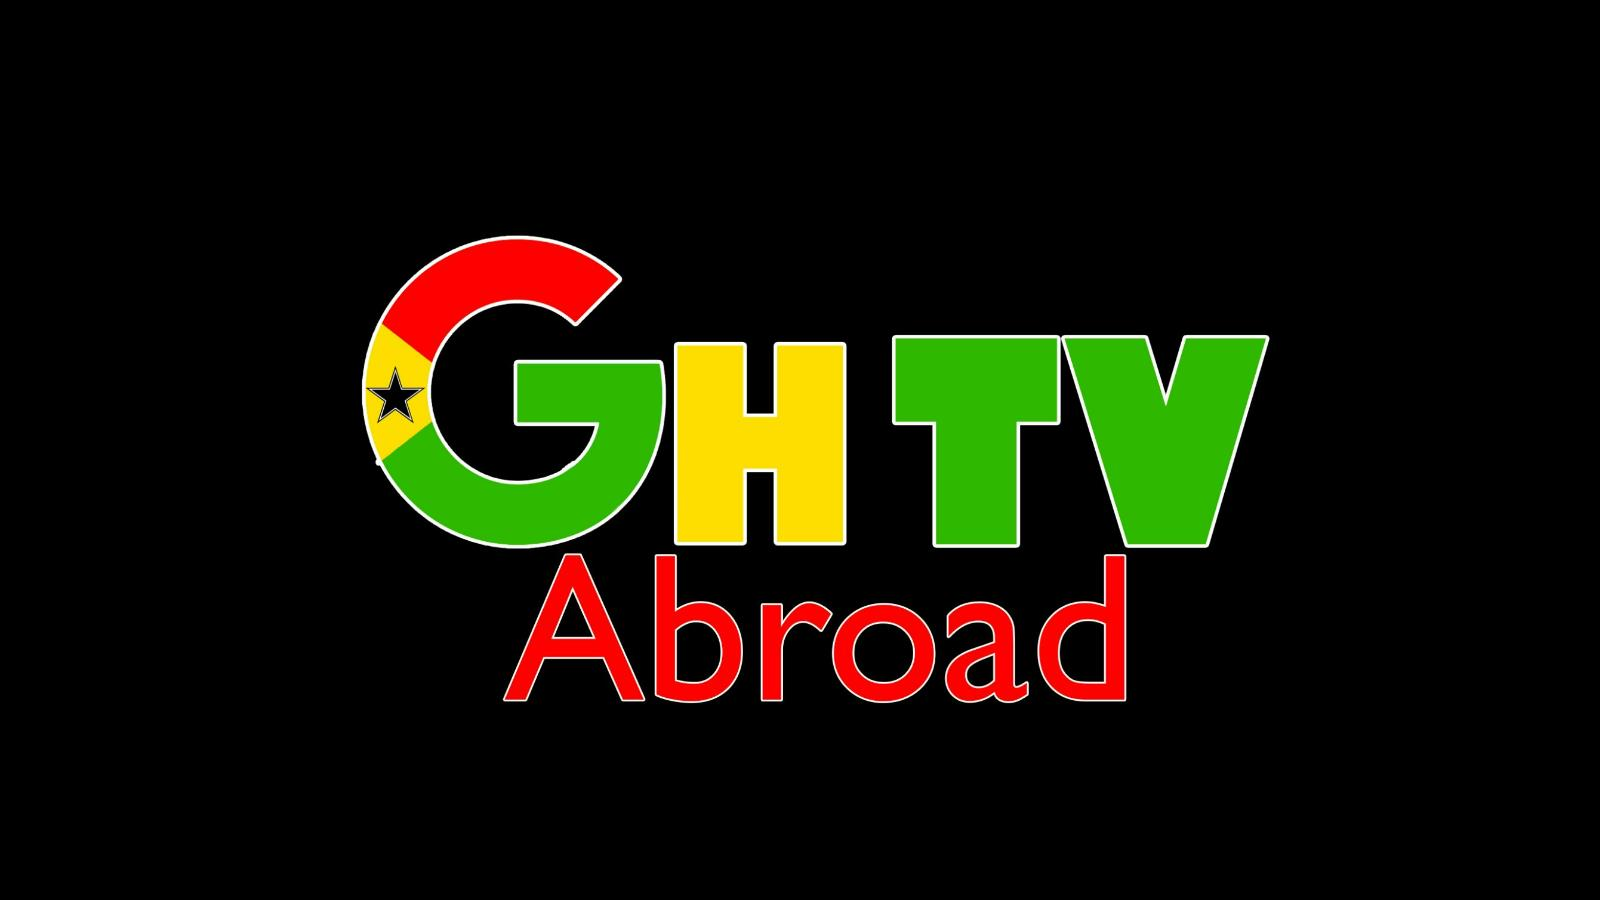 GHtv Abroad